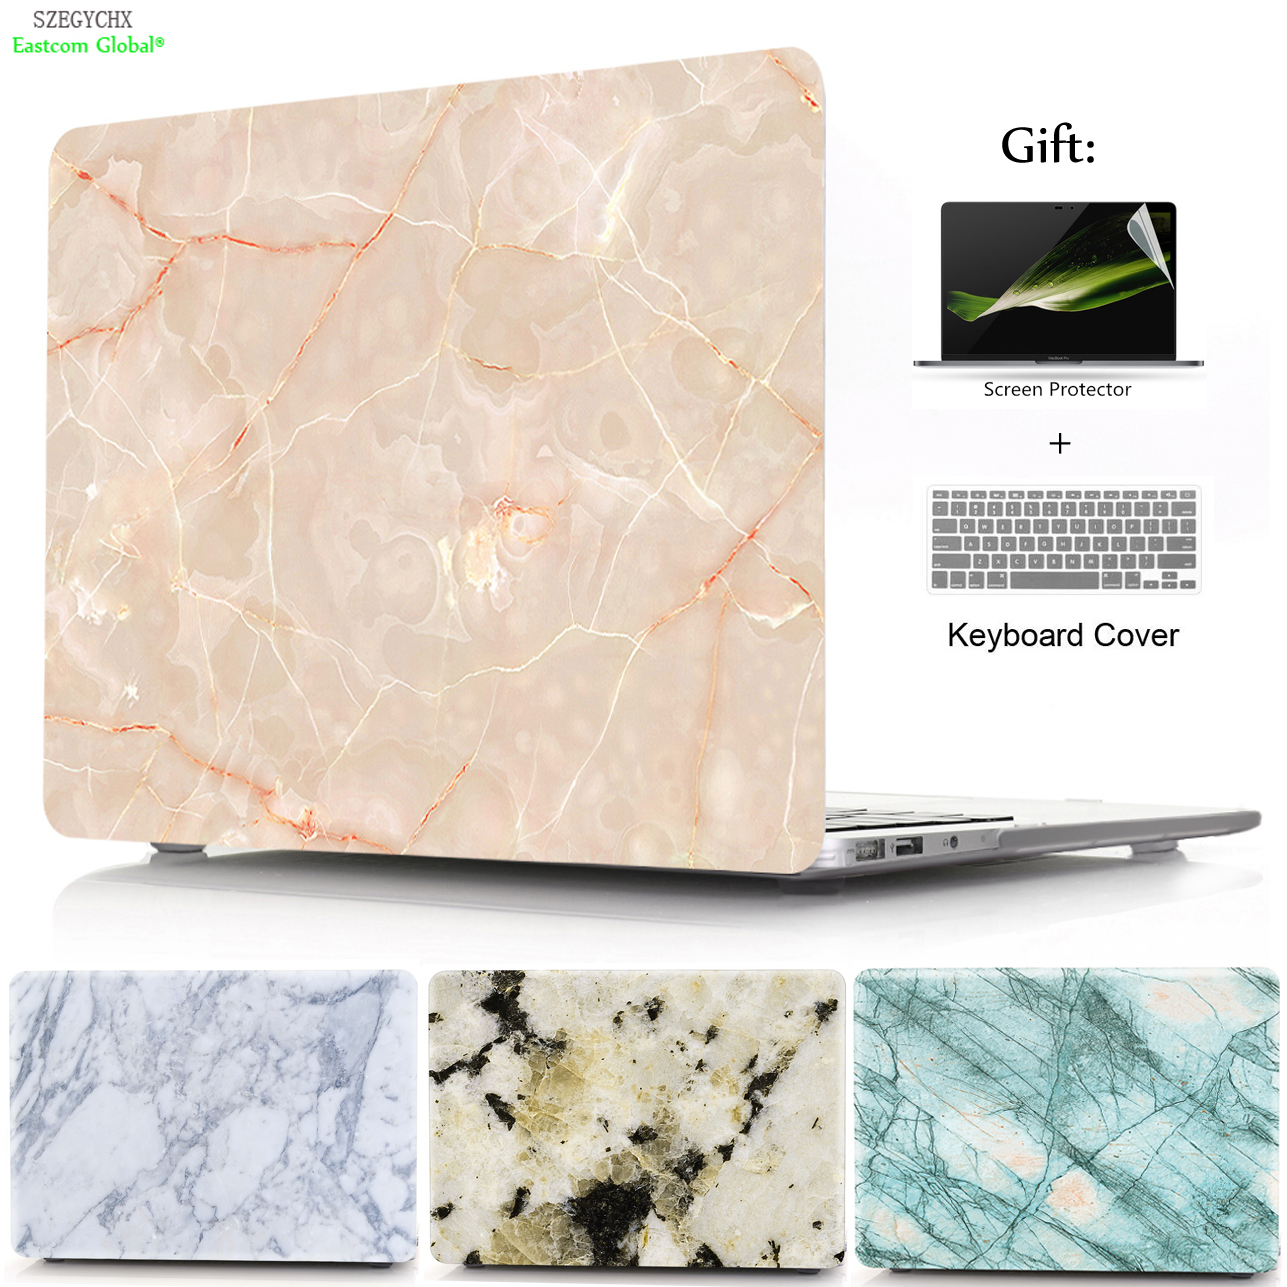 SZEGYCHX Marble Texture Hard Case Sleeve For Macbook Air Pro Retina 11 13 15 13.3 inch with Touch Bar inch Laptop bag